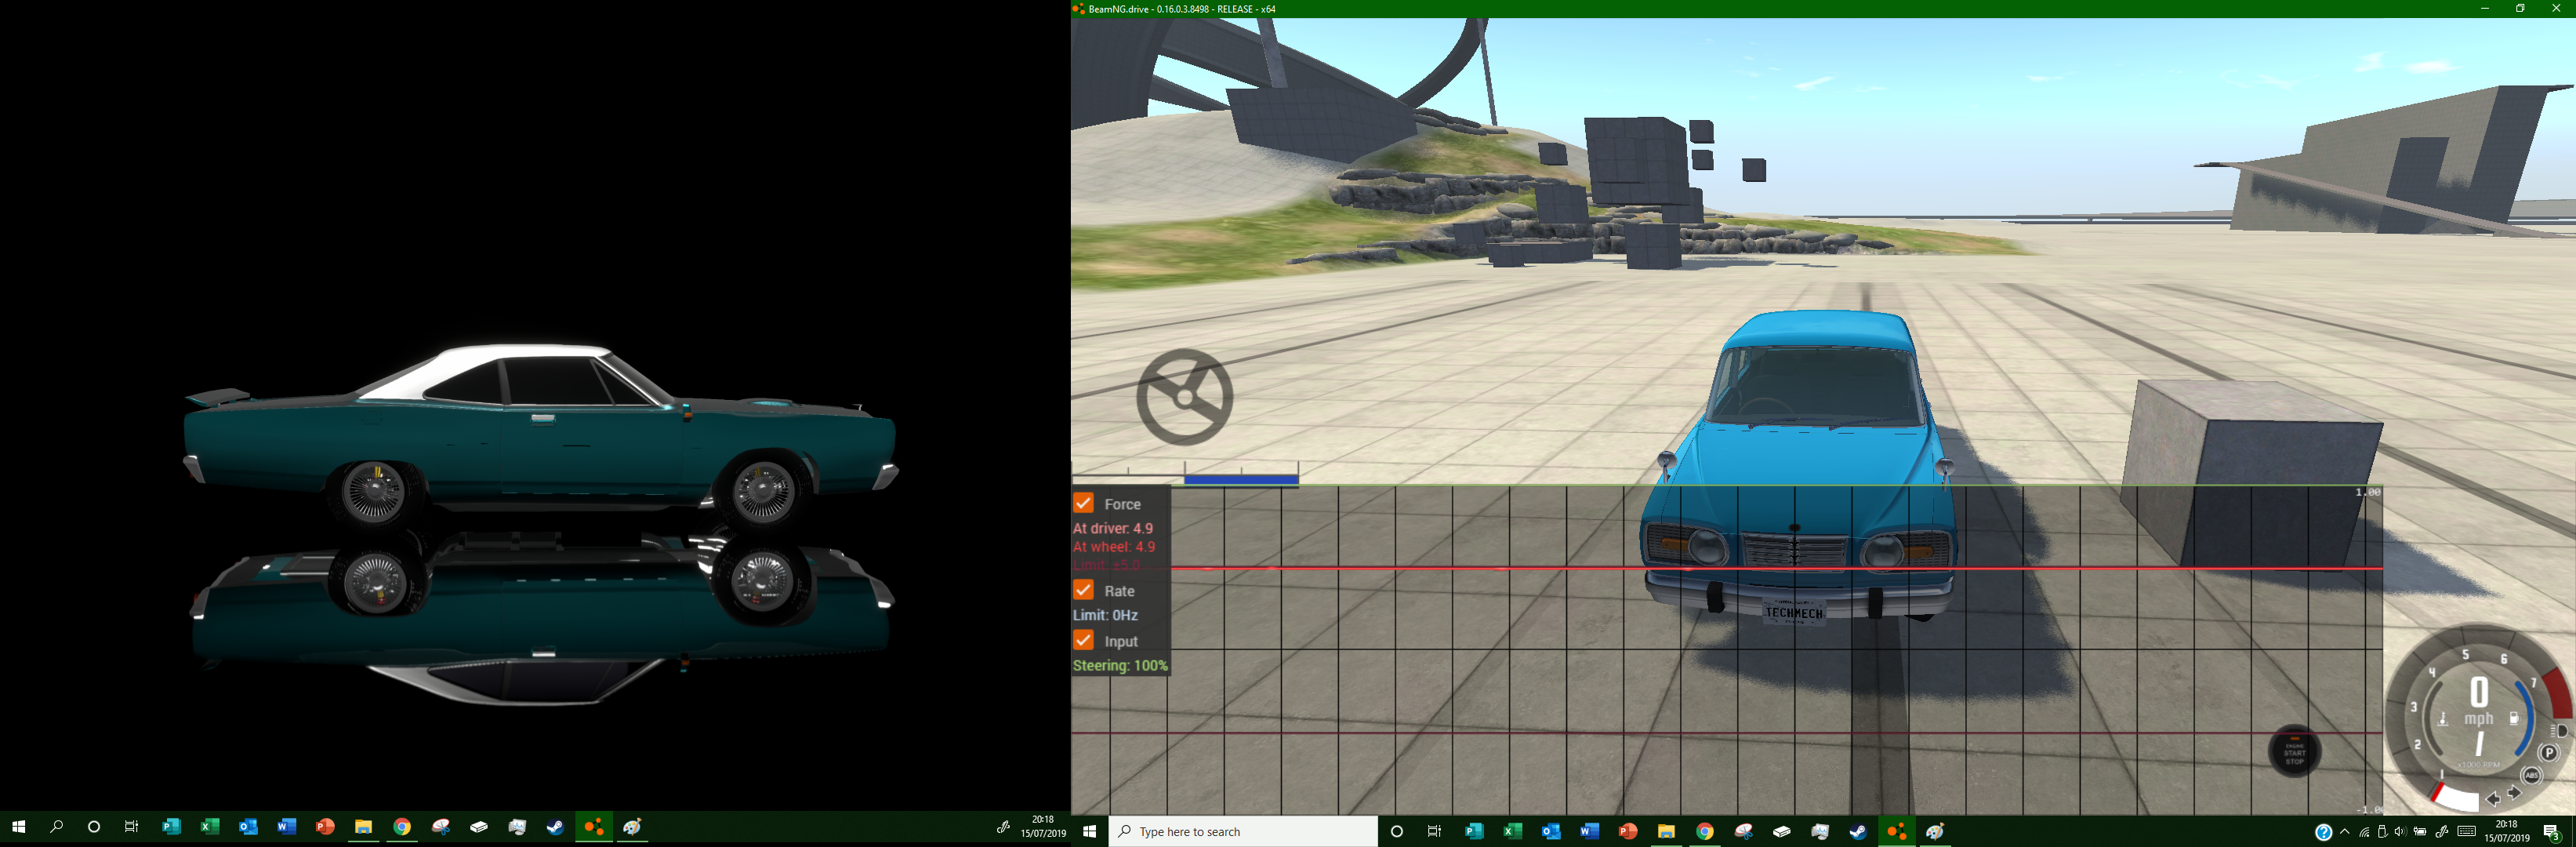 Logitech g920 turns all the way right    BeamNG